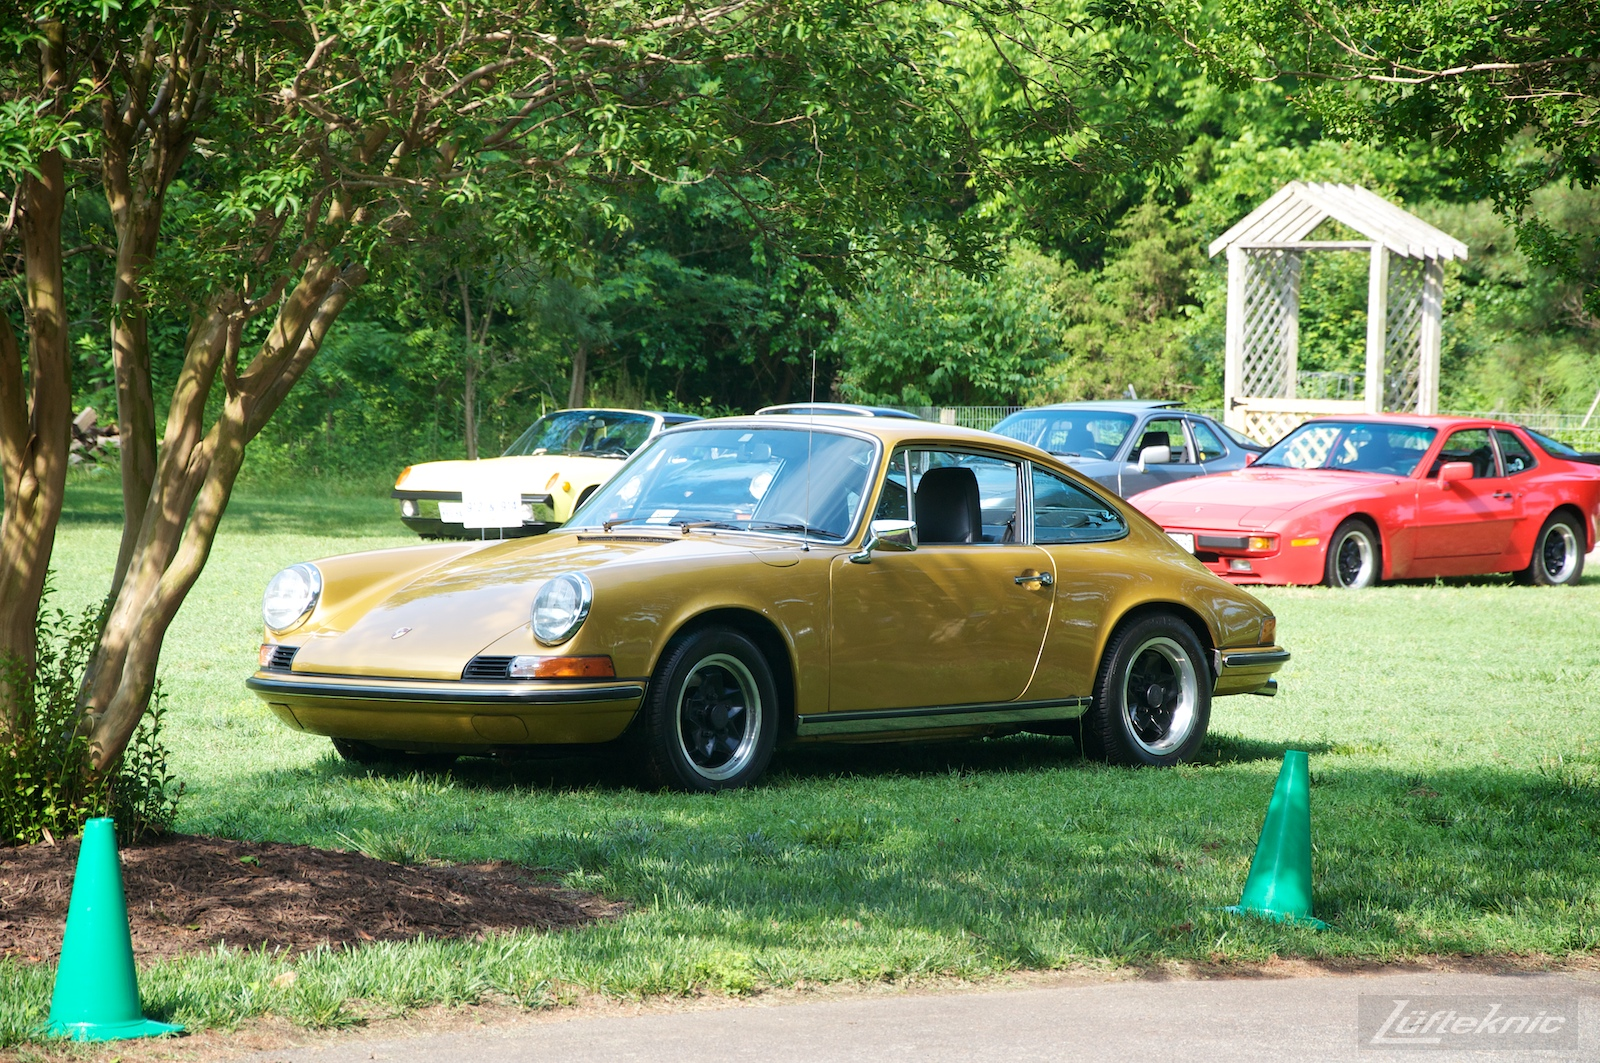 Richmond Porsche meet gold 911.